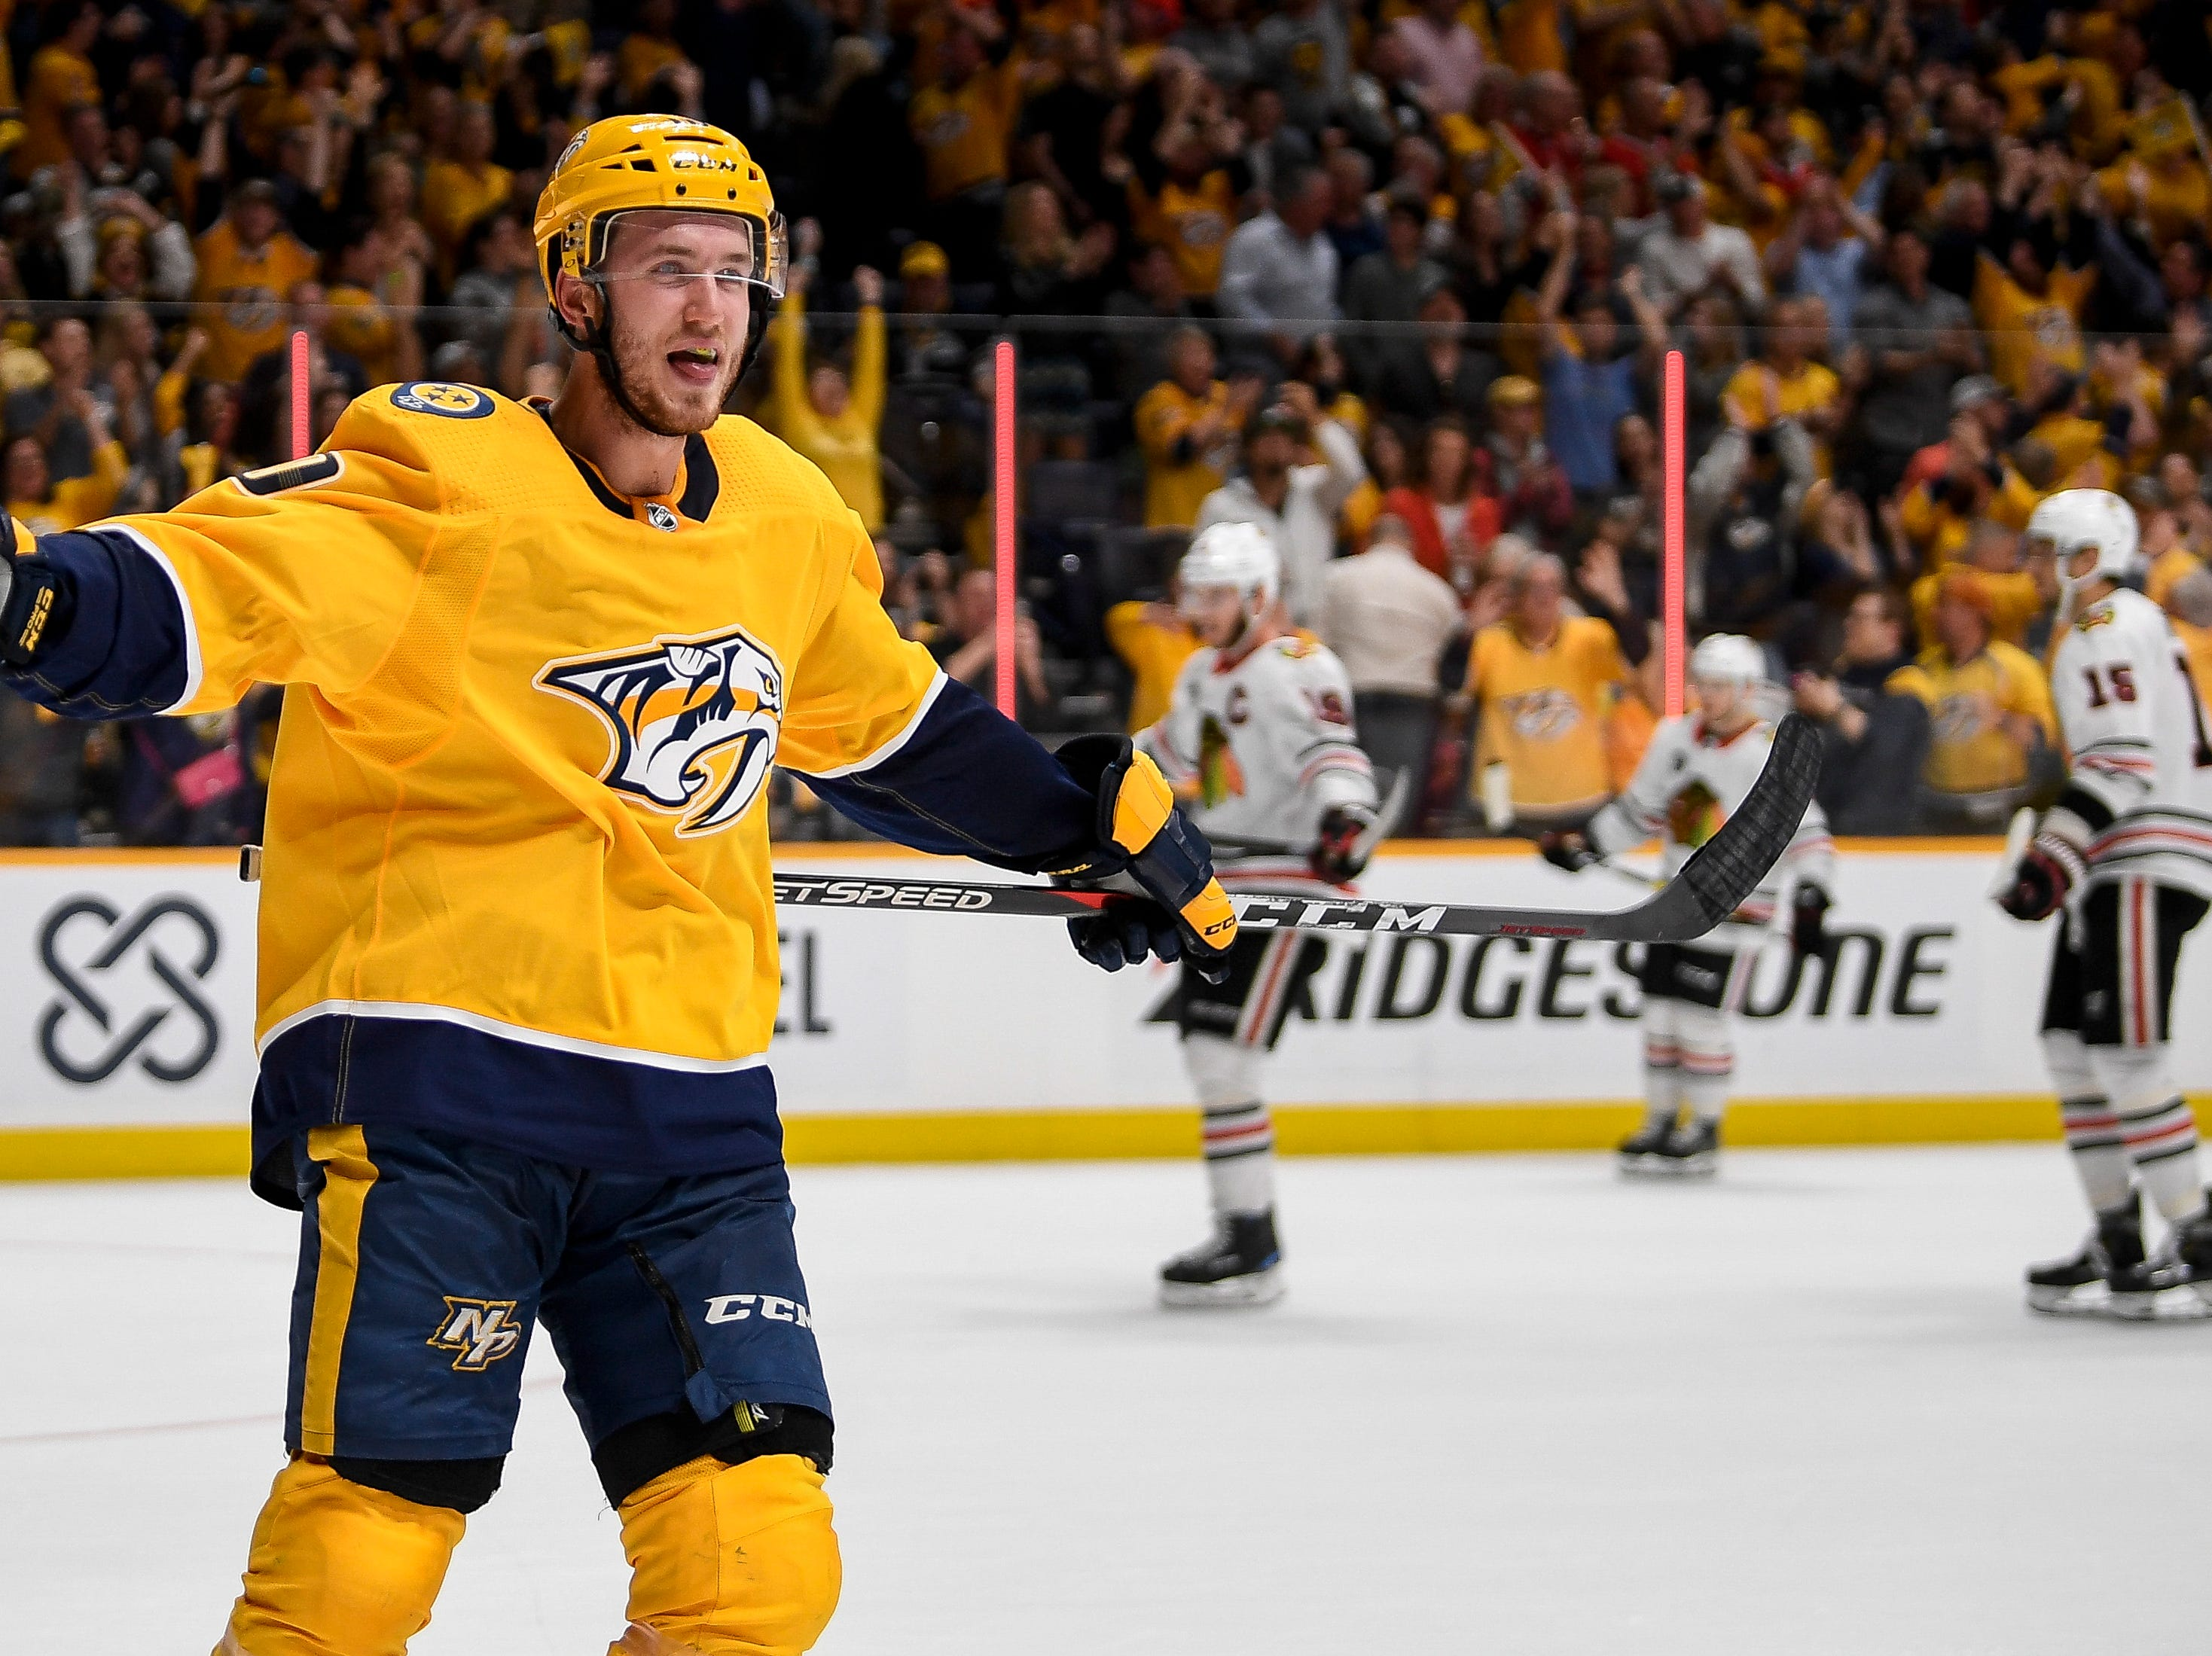 Nashville Predators center Colton Sissons (10) reacts to scoring against the Chicago Blackhawks during the third period at Bridgestone Arena in Nashville, Tenn., Saturday, April 6, 2019.